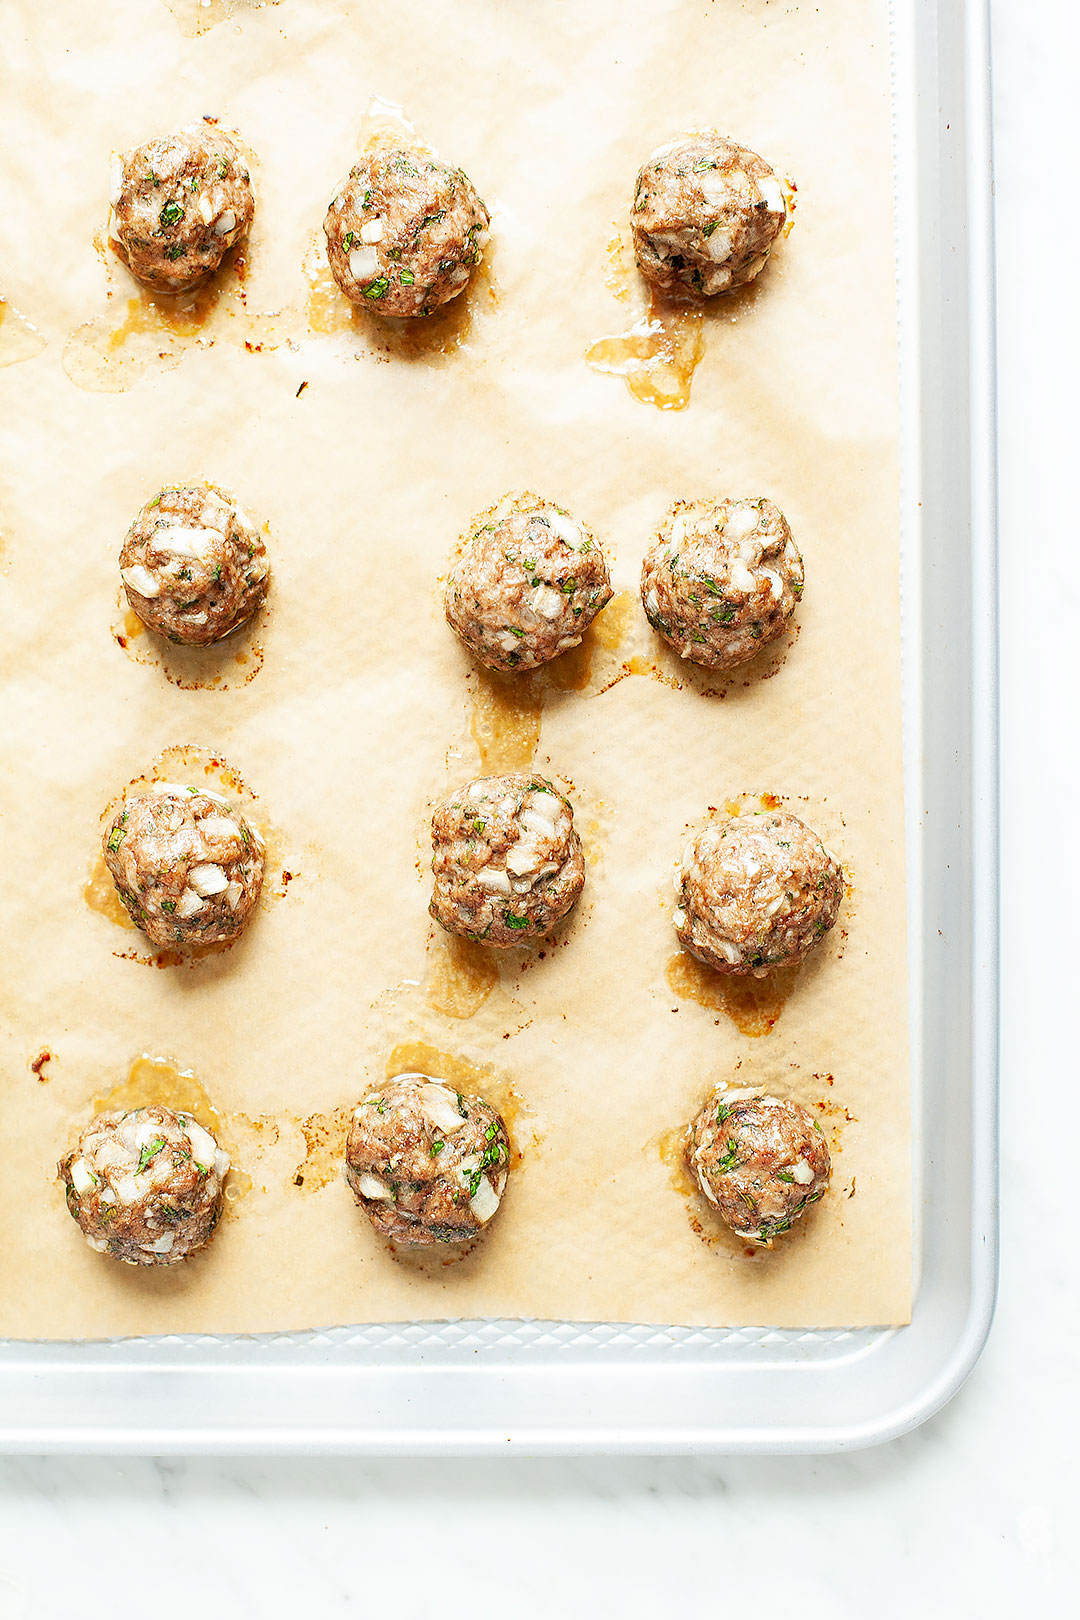 Easy baked turkey zucchini meatballs; a clean, healthy protein that's gluten-free and paleo. Perfect for pairing with pesto zoodles or bánh mì bowls. | LOVELEAF CO. NUTRITION #baked #meatballs #turkey #healthy #protein #salad #bowl #easy #lunch #dinner #zucchini